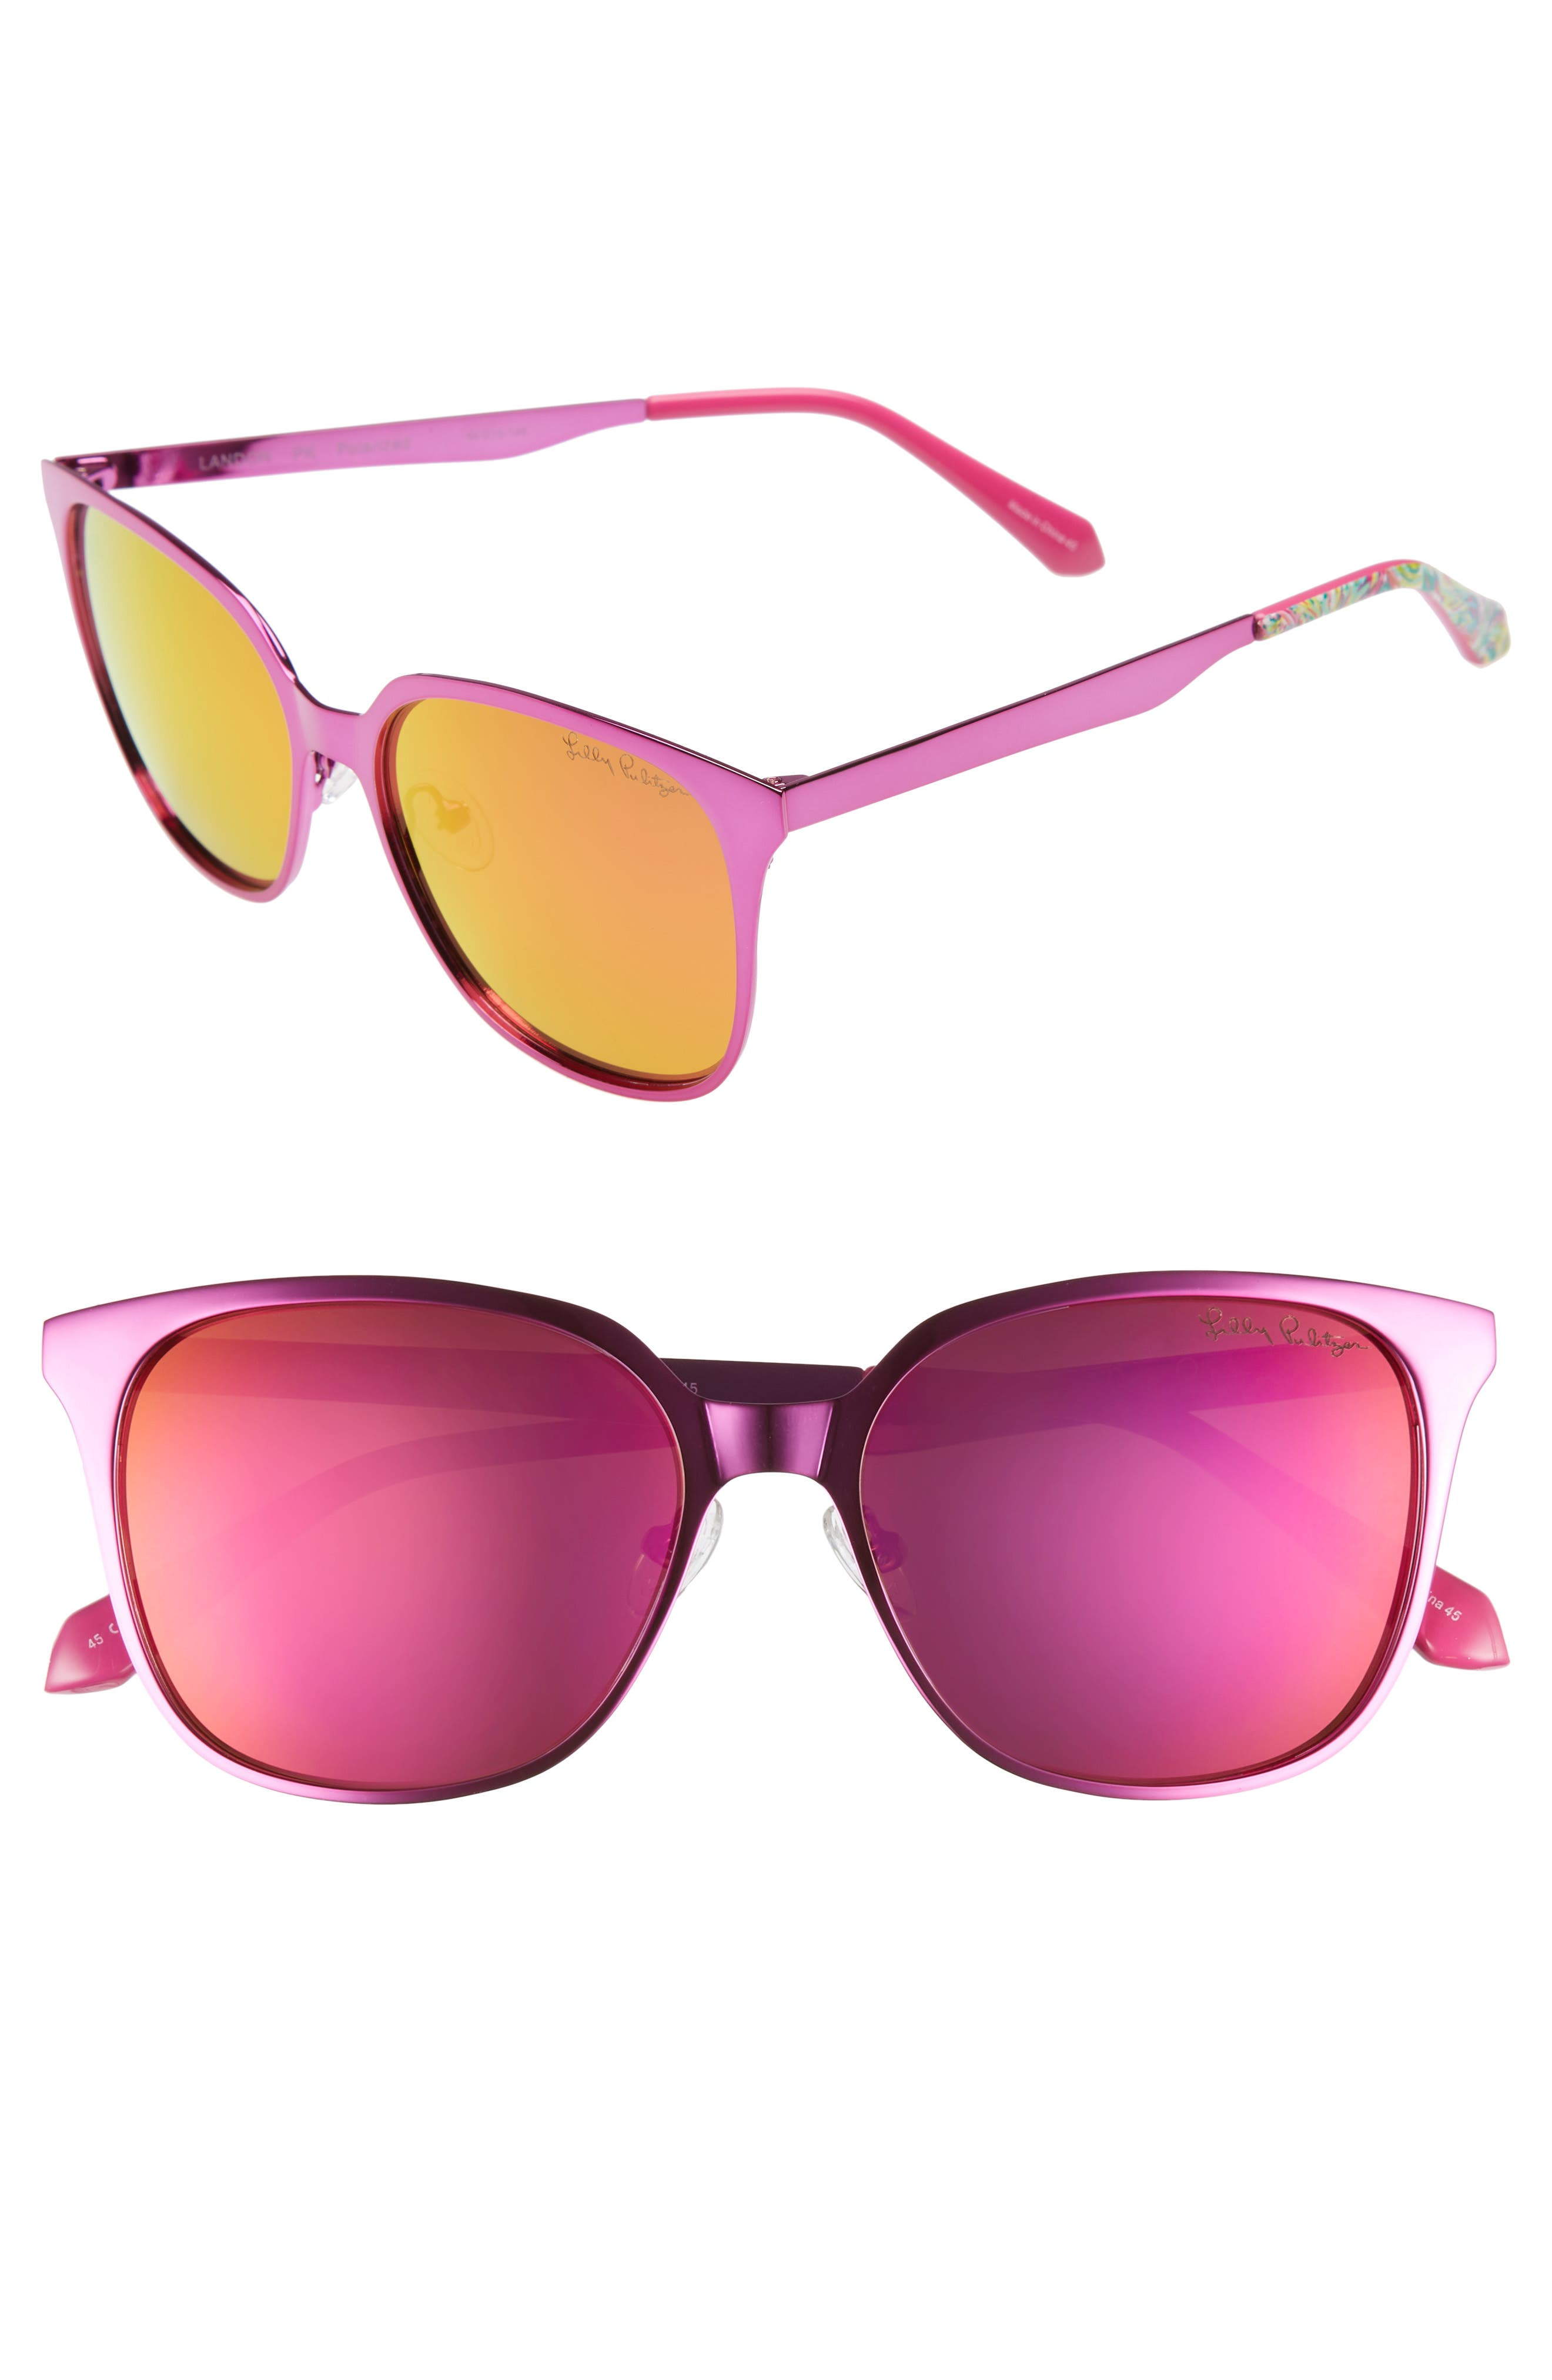 Landon 54mm Polarized Sunglasses,                         Main,                         color, PINK/ PINK